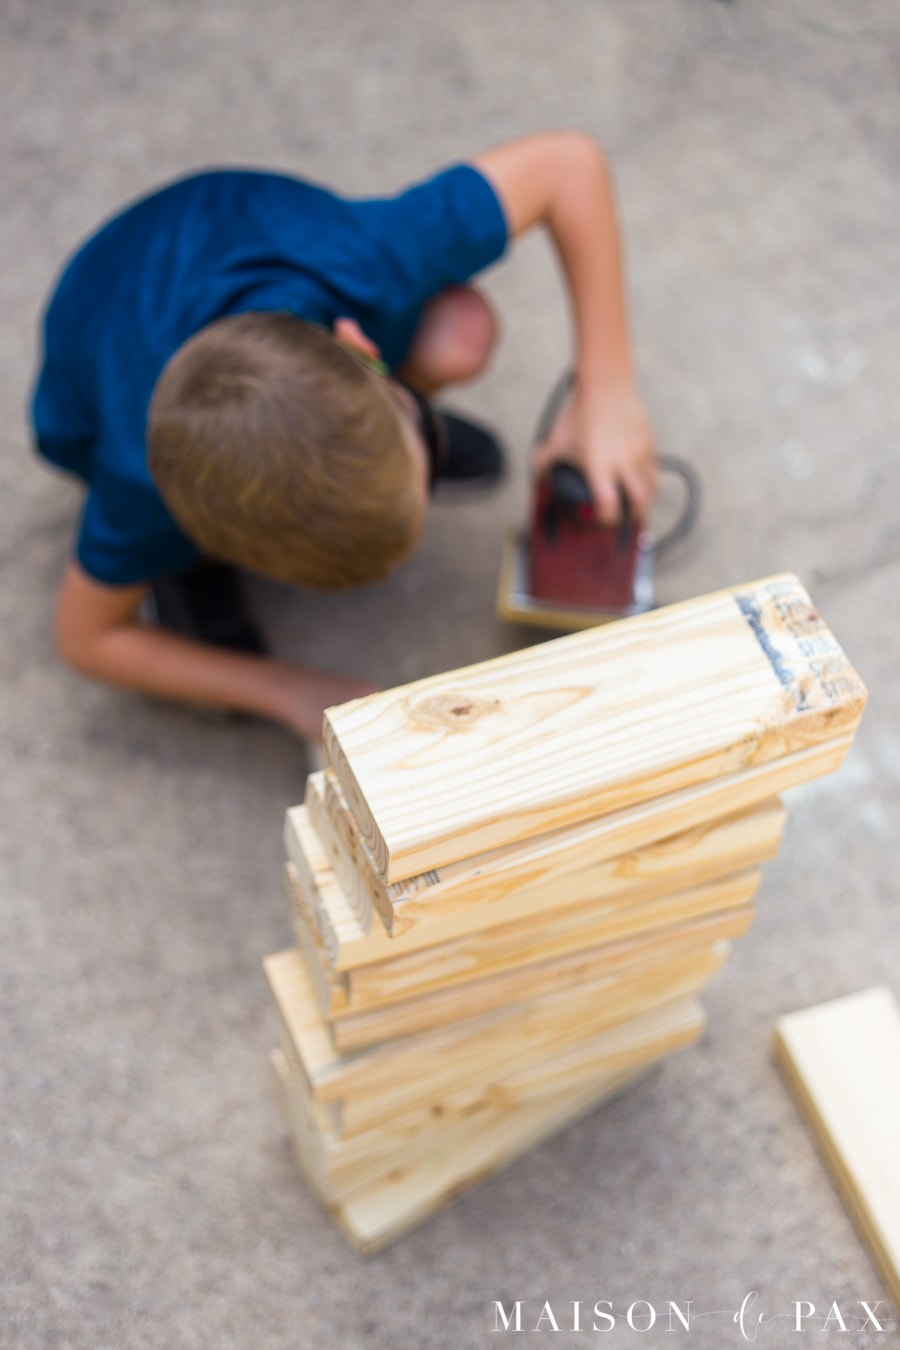 Get tips for completing building projects with your kids! #familyfun #familyproject #outdoorgames #kidfriendlyproject #diyproject